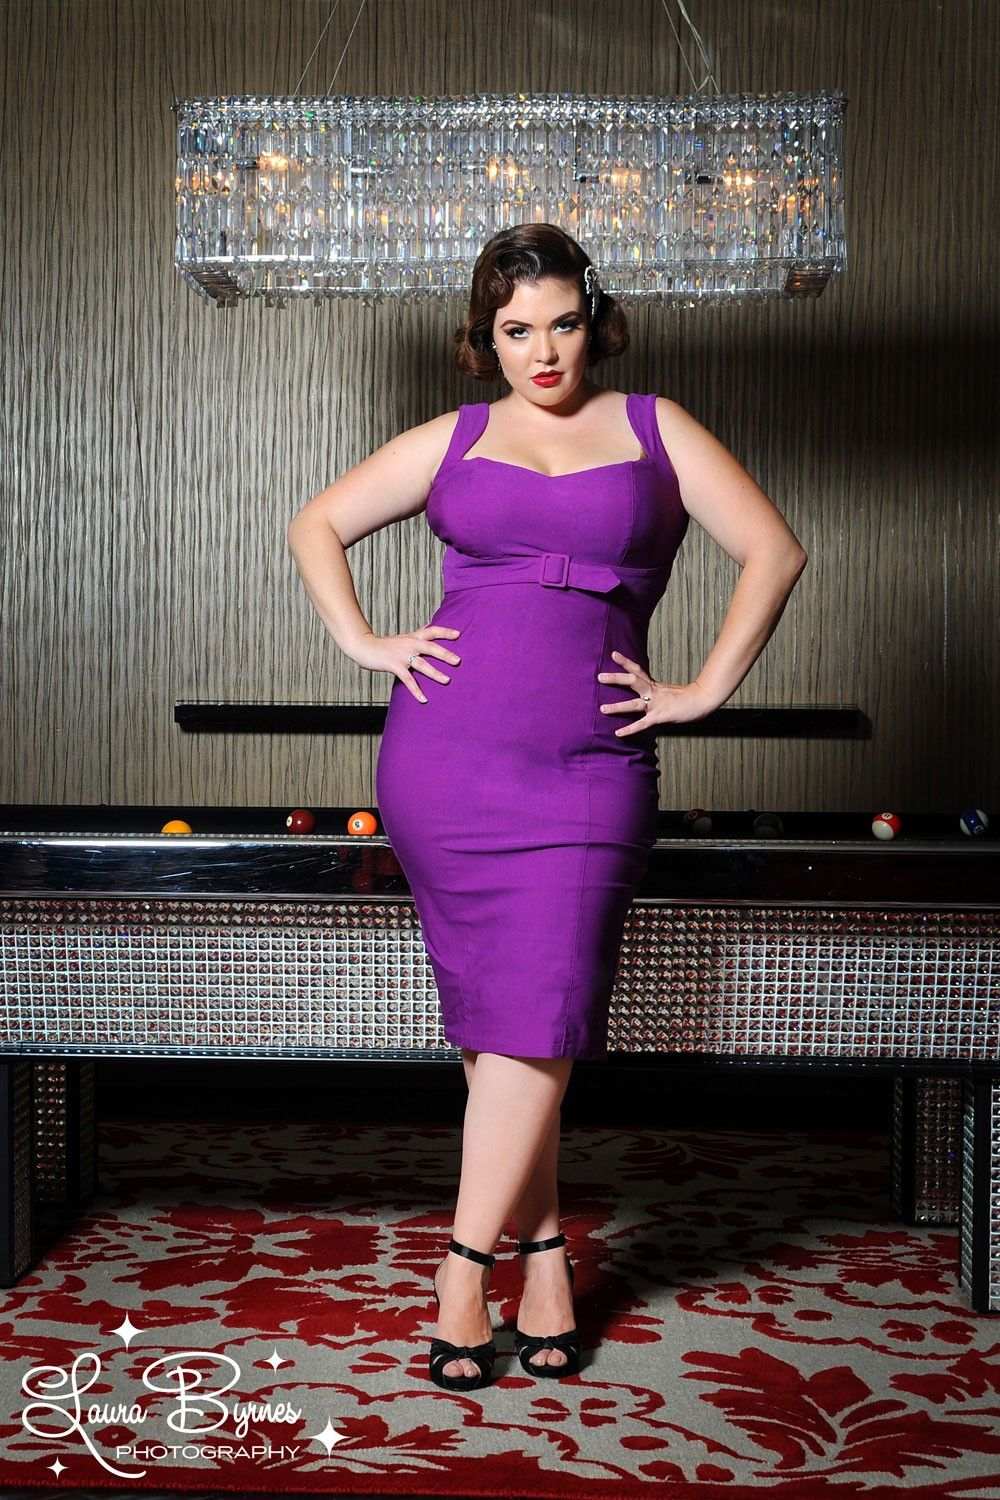 Jessica Dress in Baton Rouge Bengaline - Plus Size | Dress Me Up ...